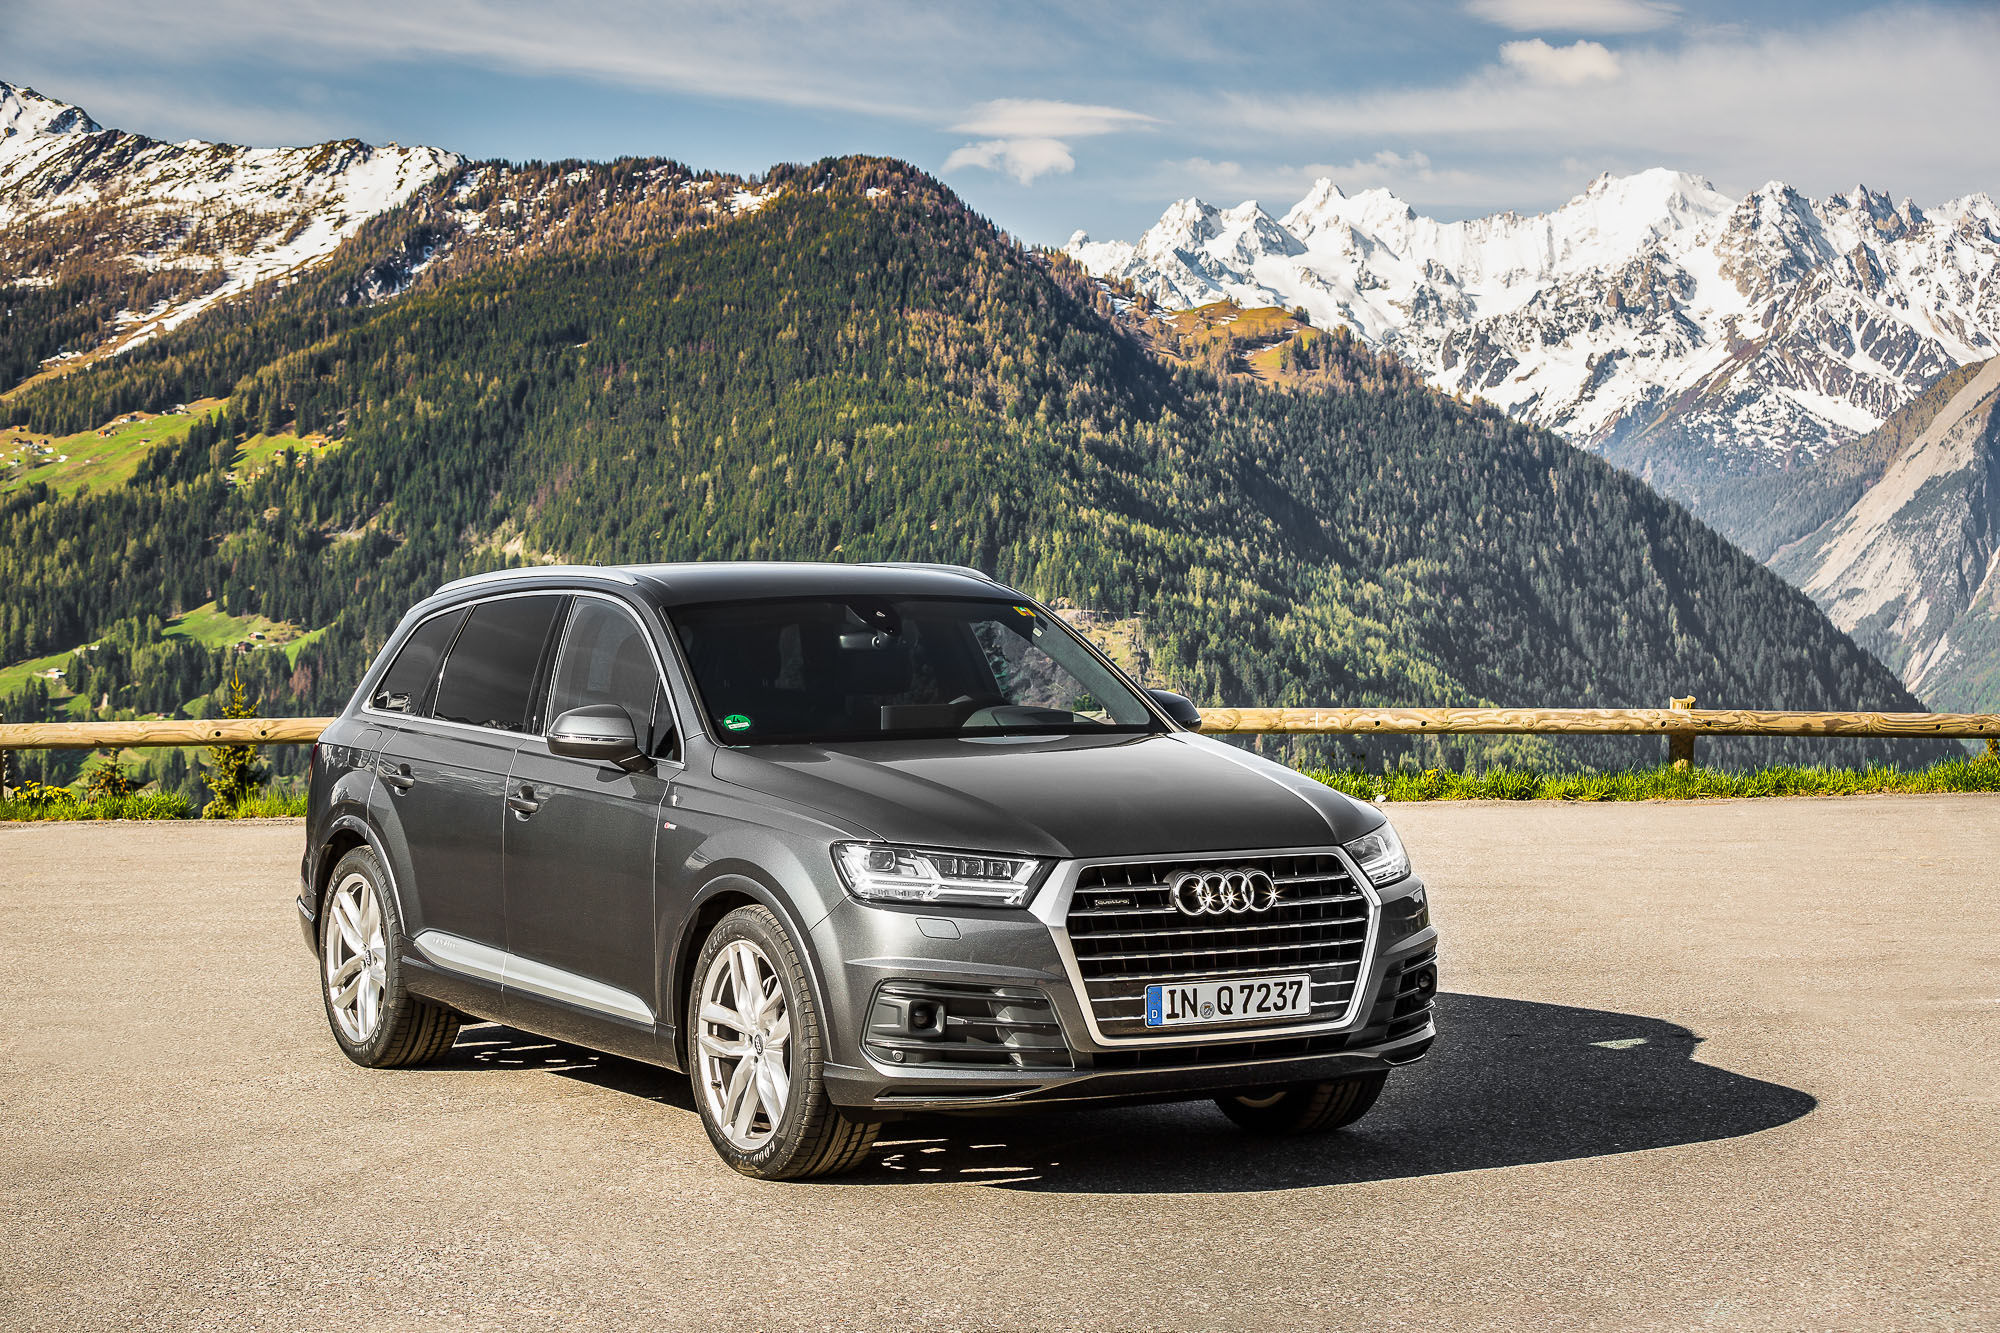 2016 Audi Q7 Review - photos | CarAdvice